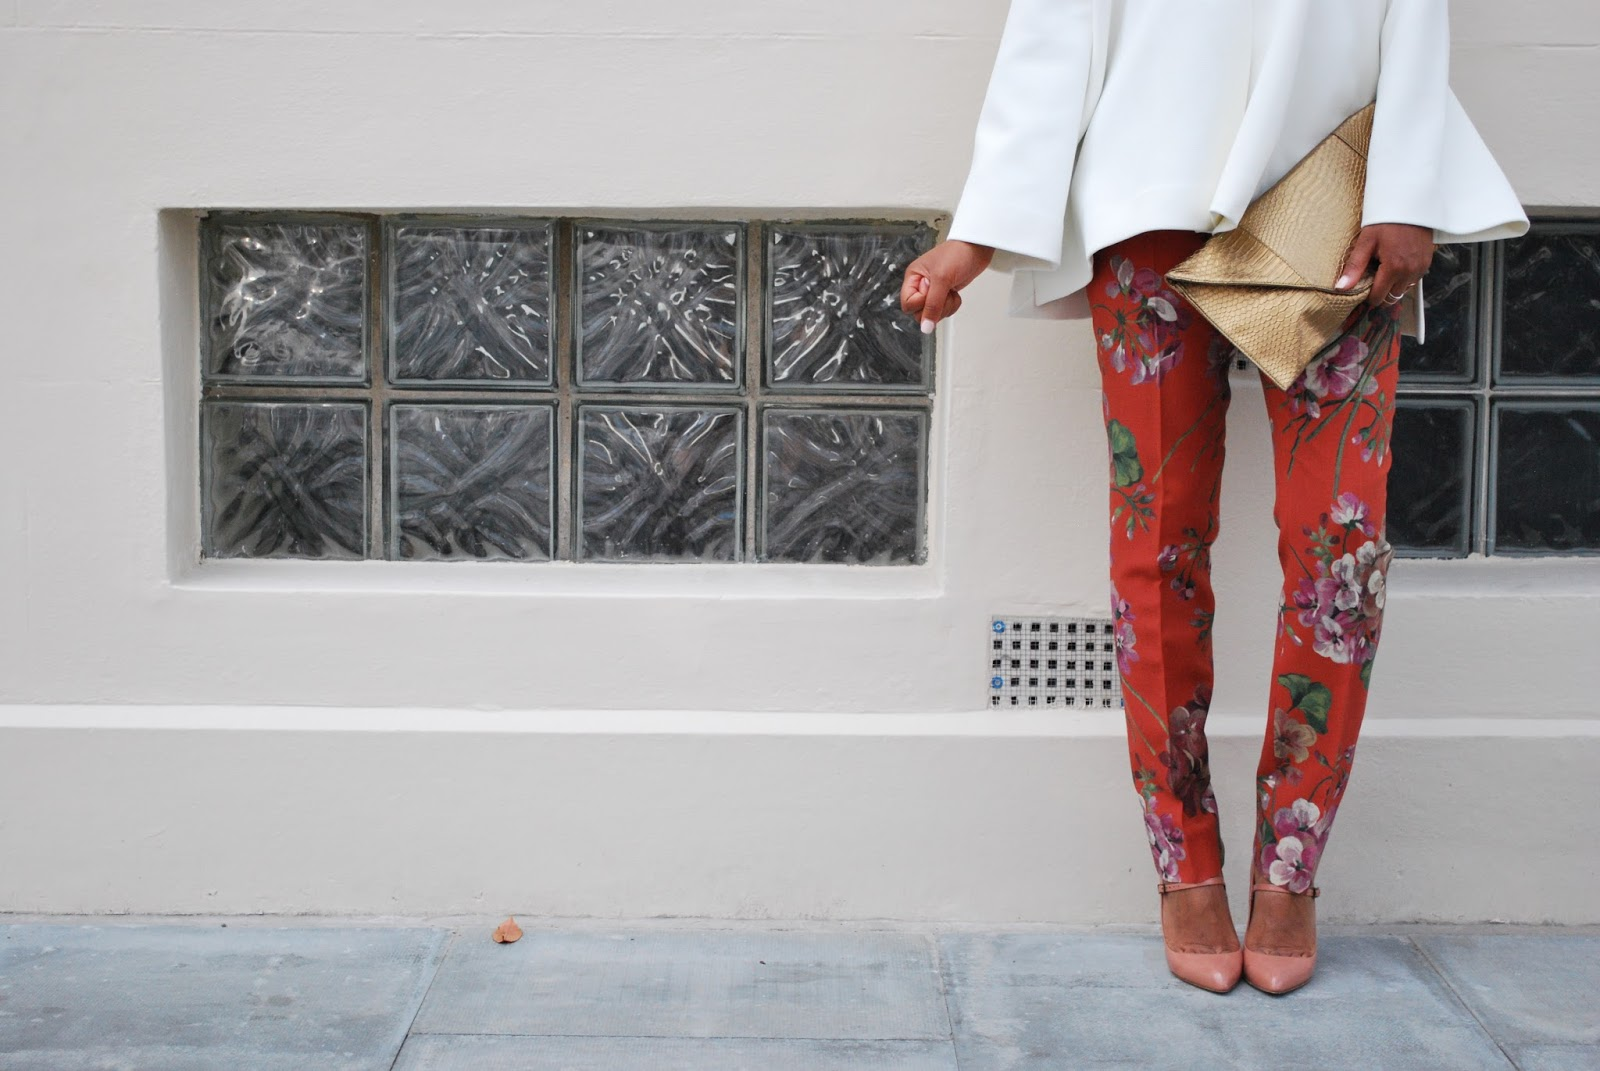 Floral print Gucci Trousers / Where to find sample sales in London / Ou trouver les ventes privées a Londres ?